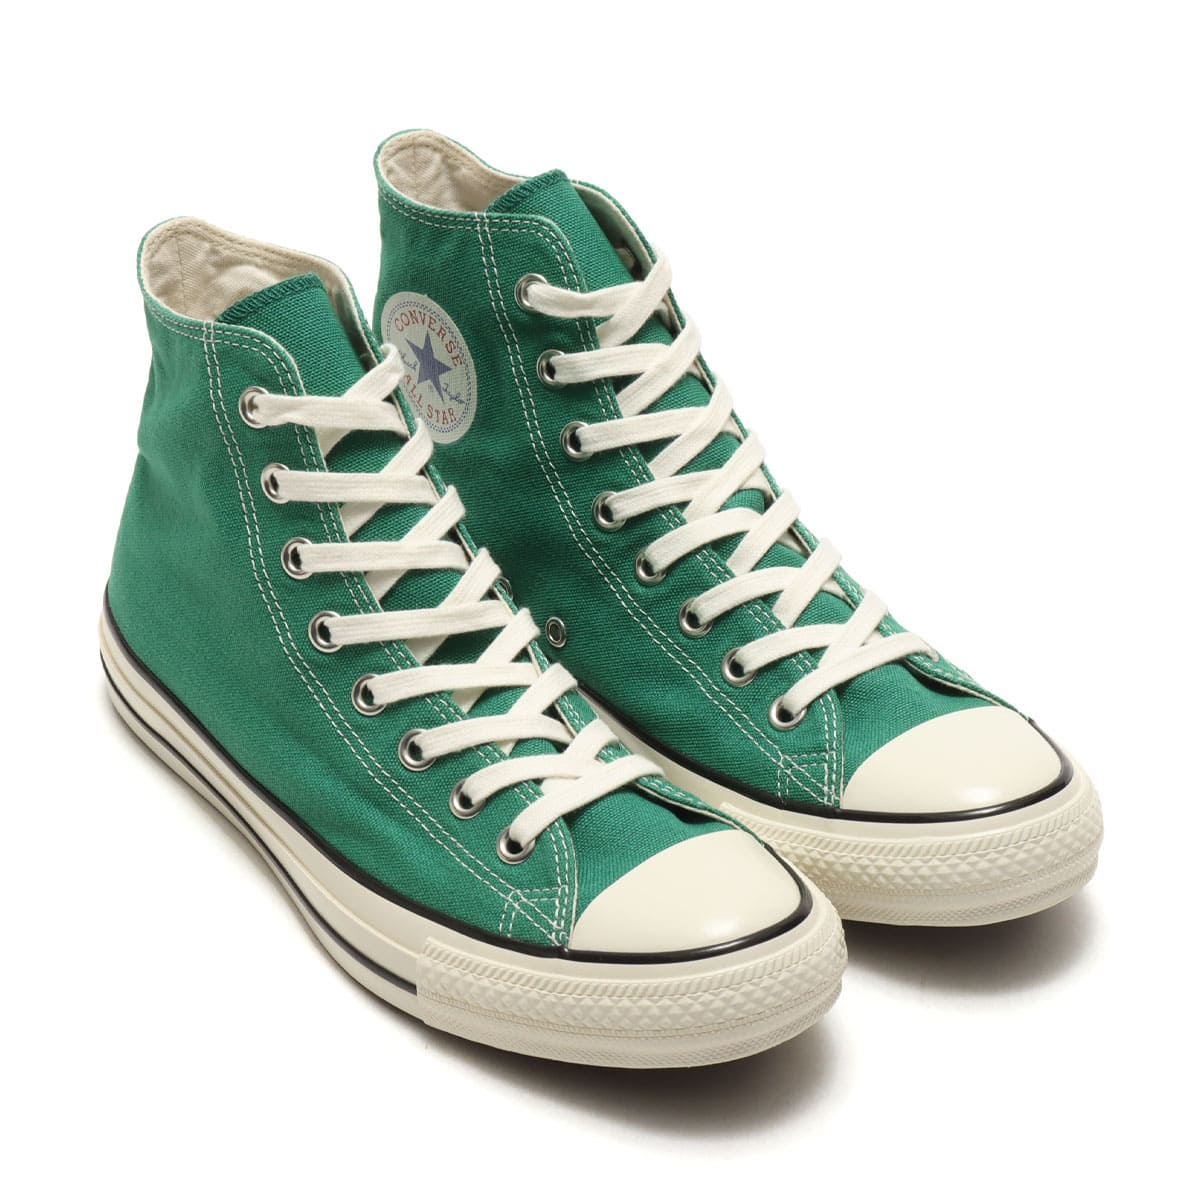 CONVERSE ALL STAR US COLORS HI GREEN 21SS-I_photo_large